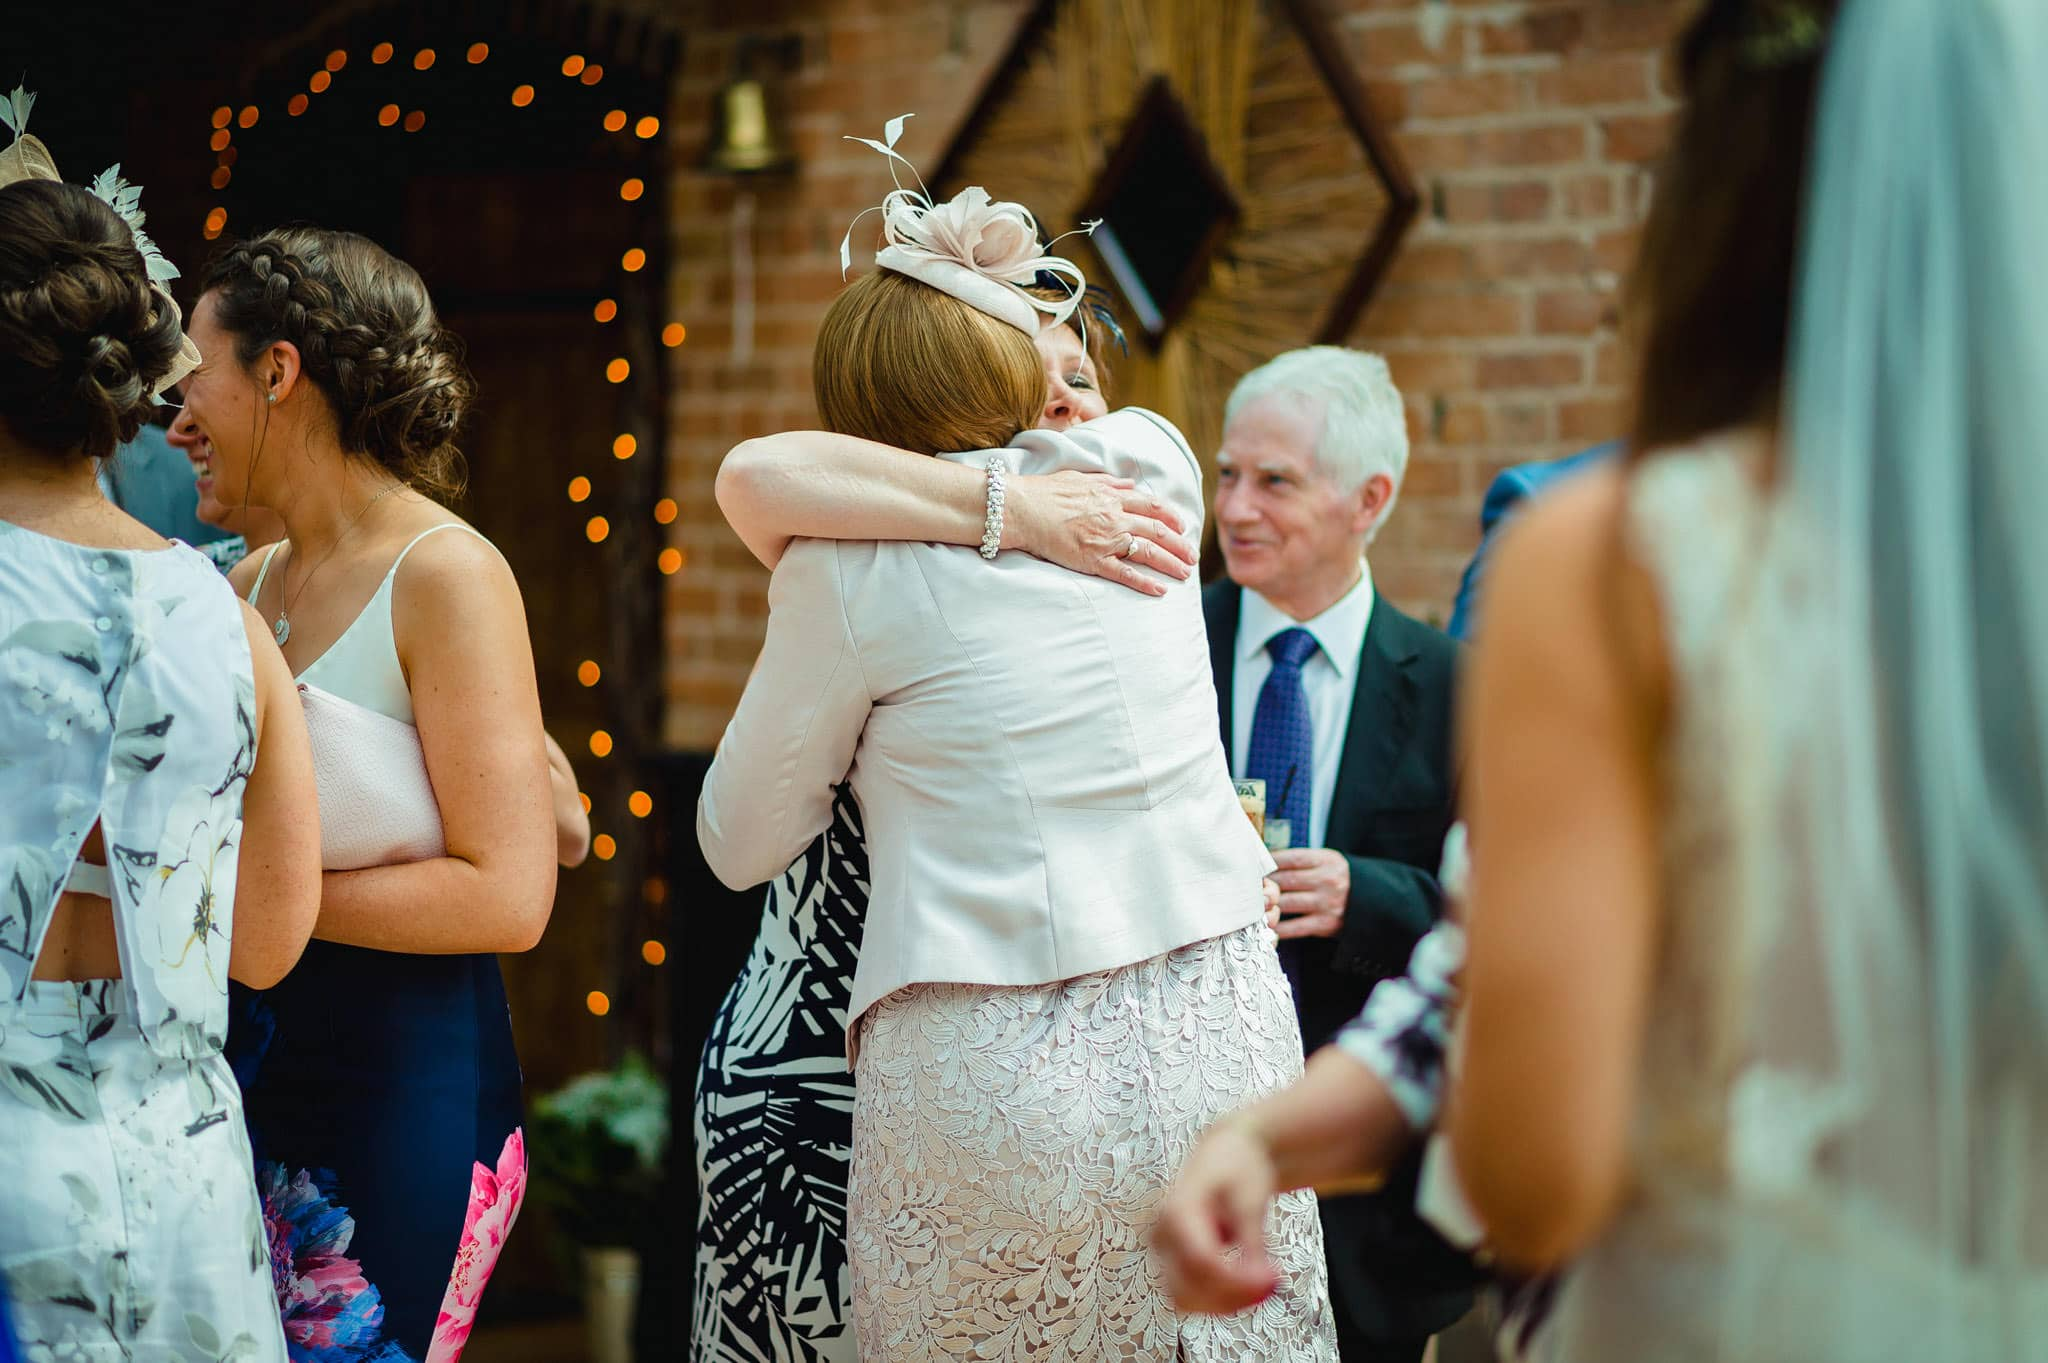 wedding at redhouse barn 87 - Wedding at Redhouse Barn in Stoke Prior, Worcestershire